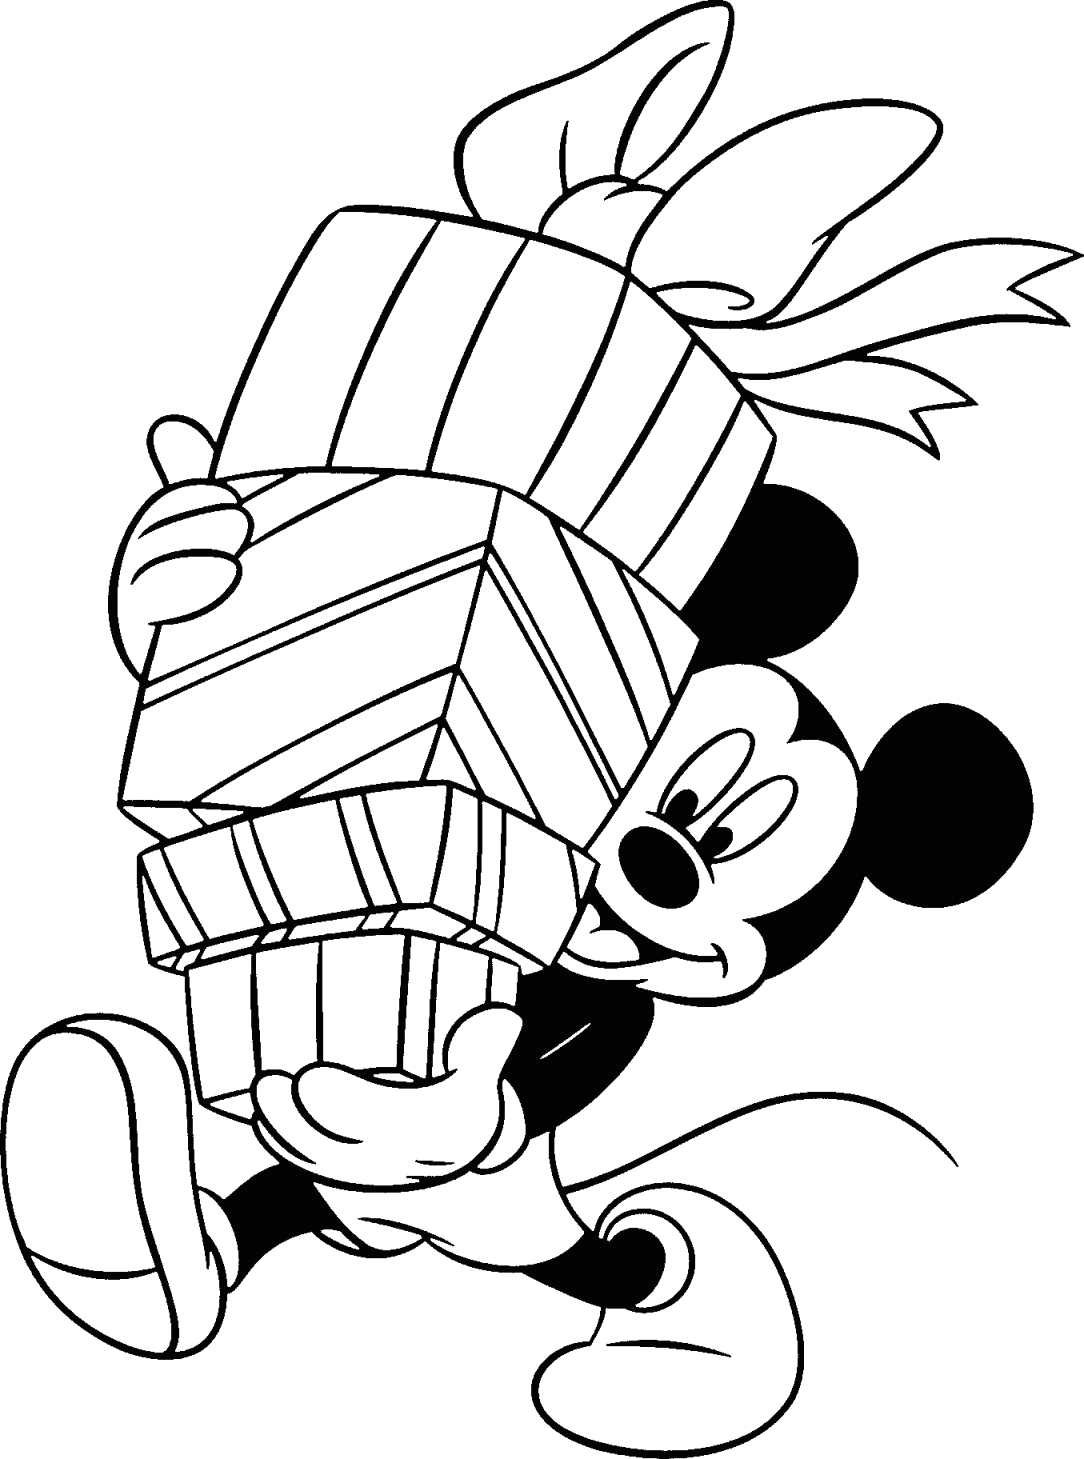 Free Disney Christmas Coloring Pages to Print Free Disney Christmas Printable Coloring Pages for Kids